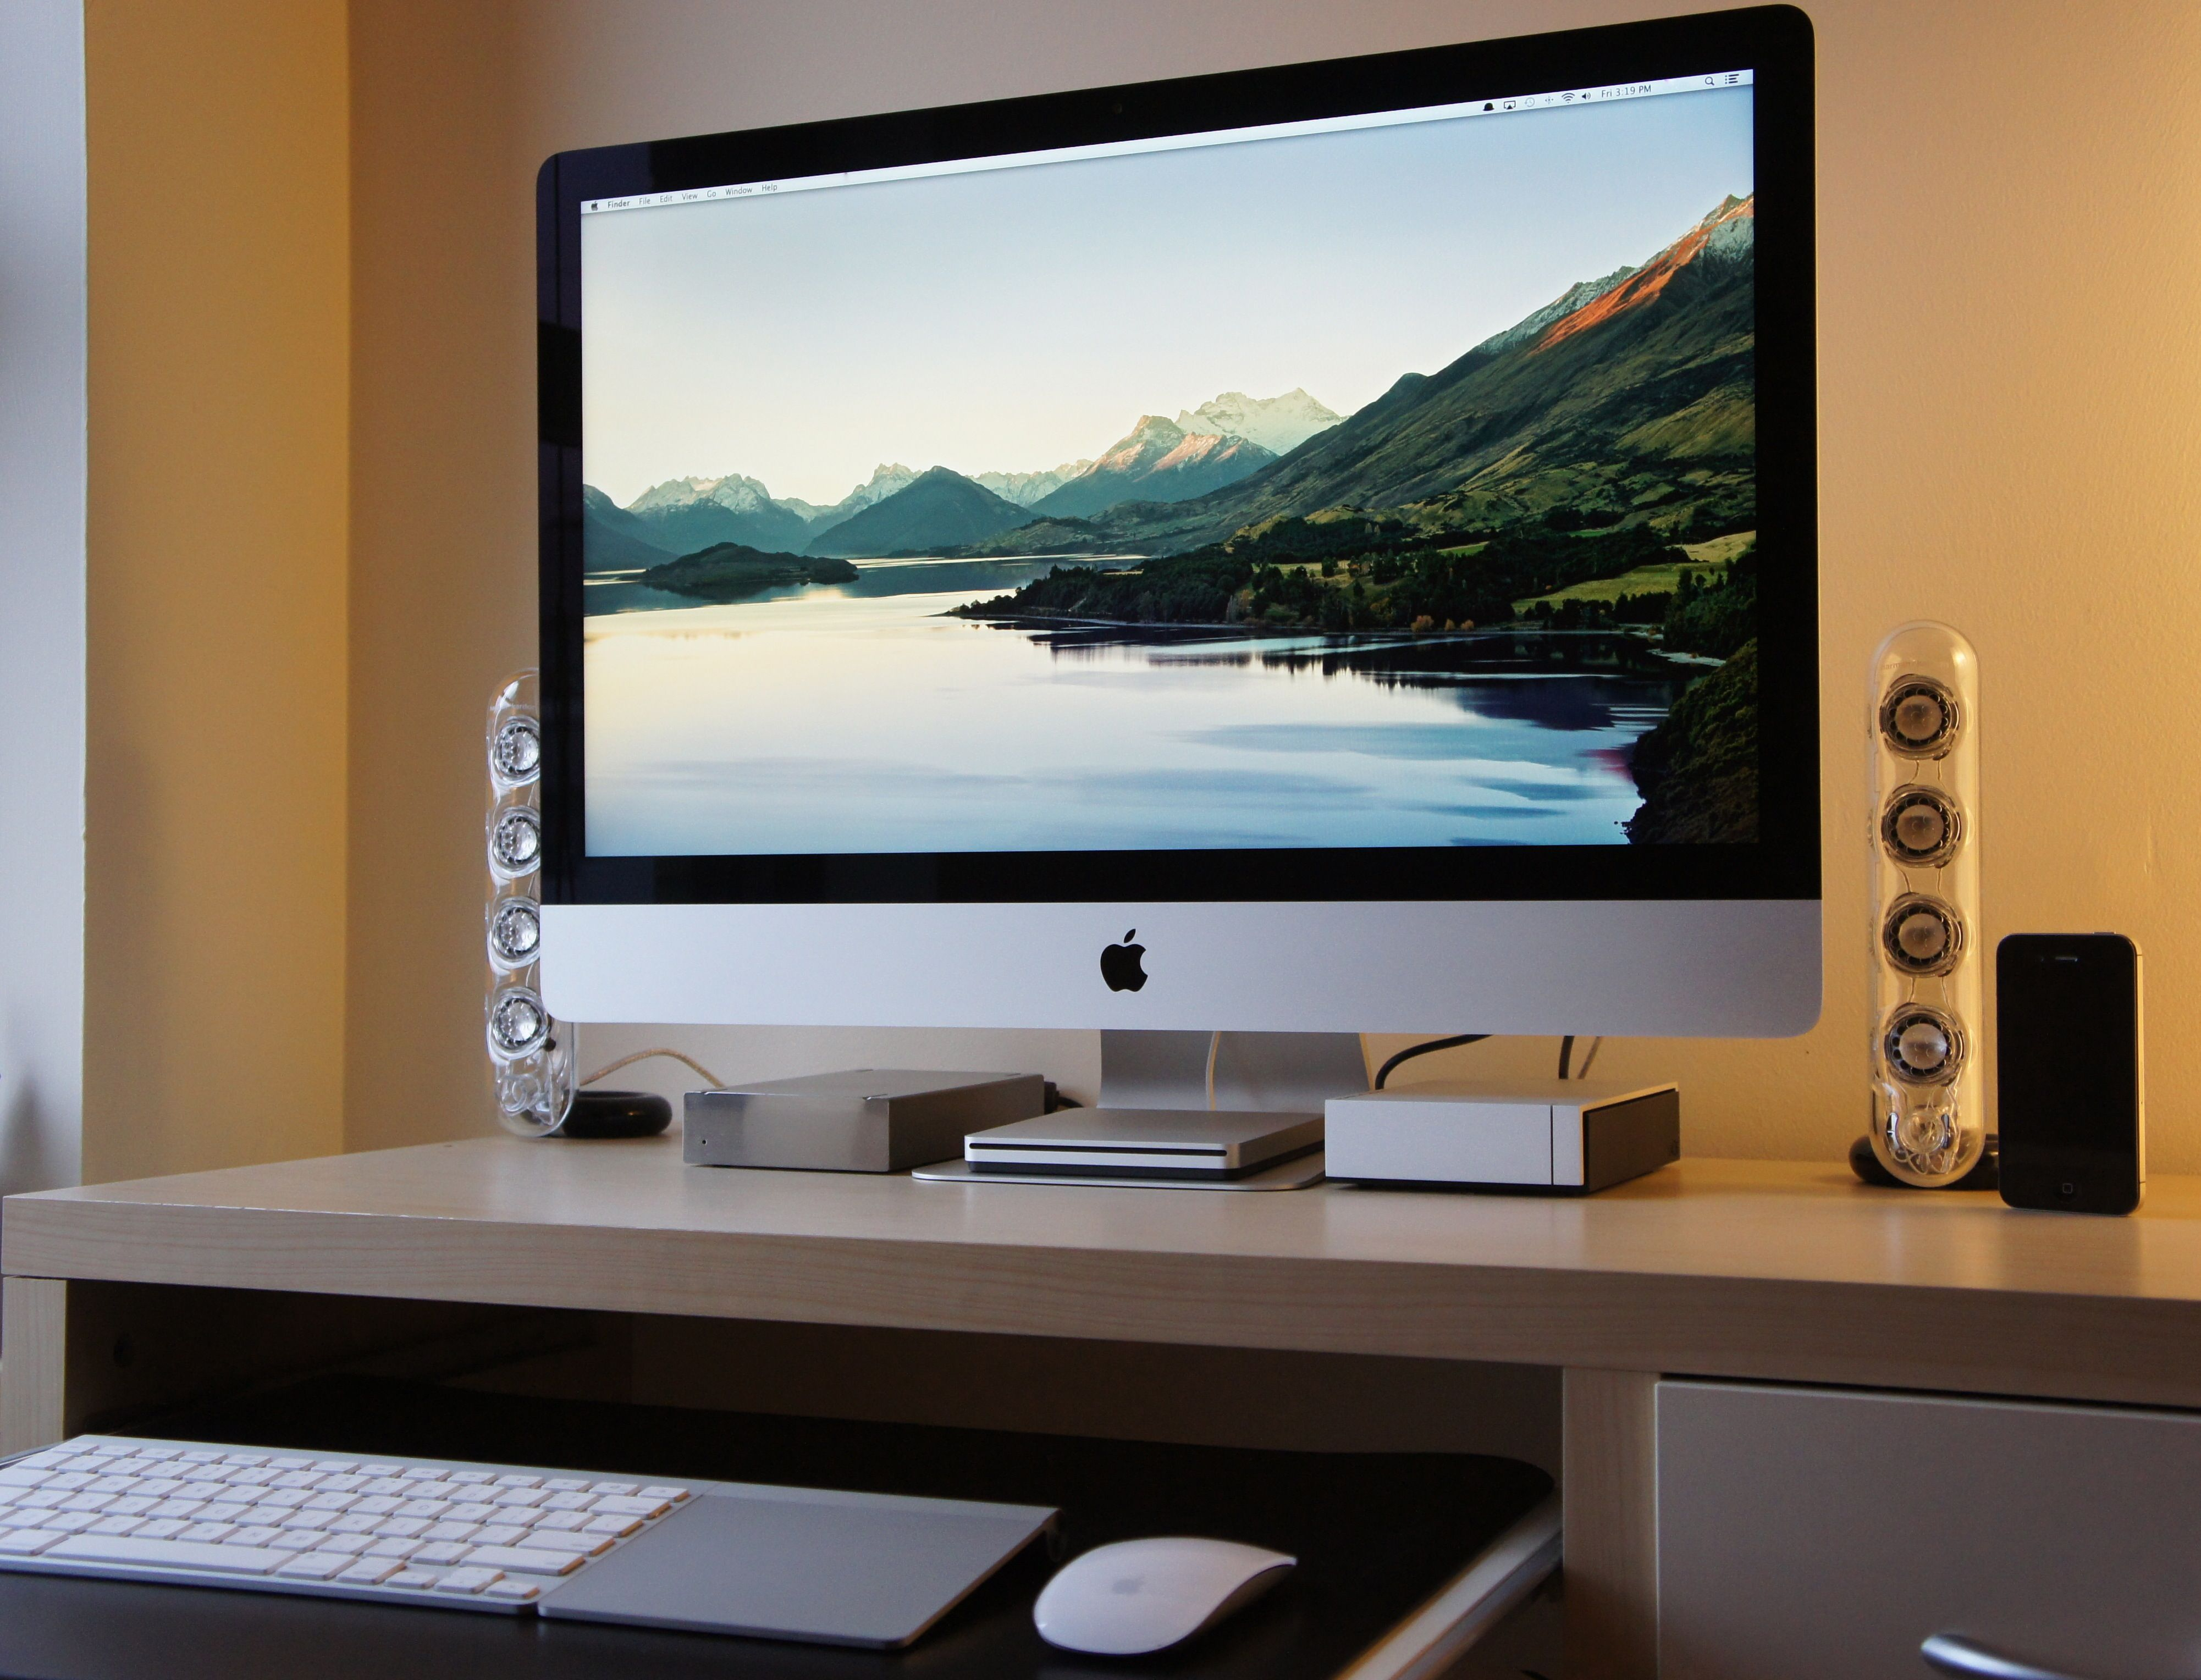 54 of screen real estate ronnys dual screen setup real estate office spaces and men cave - Computertisch Fr Imac 27